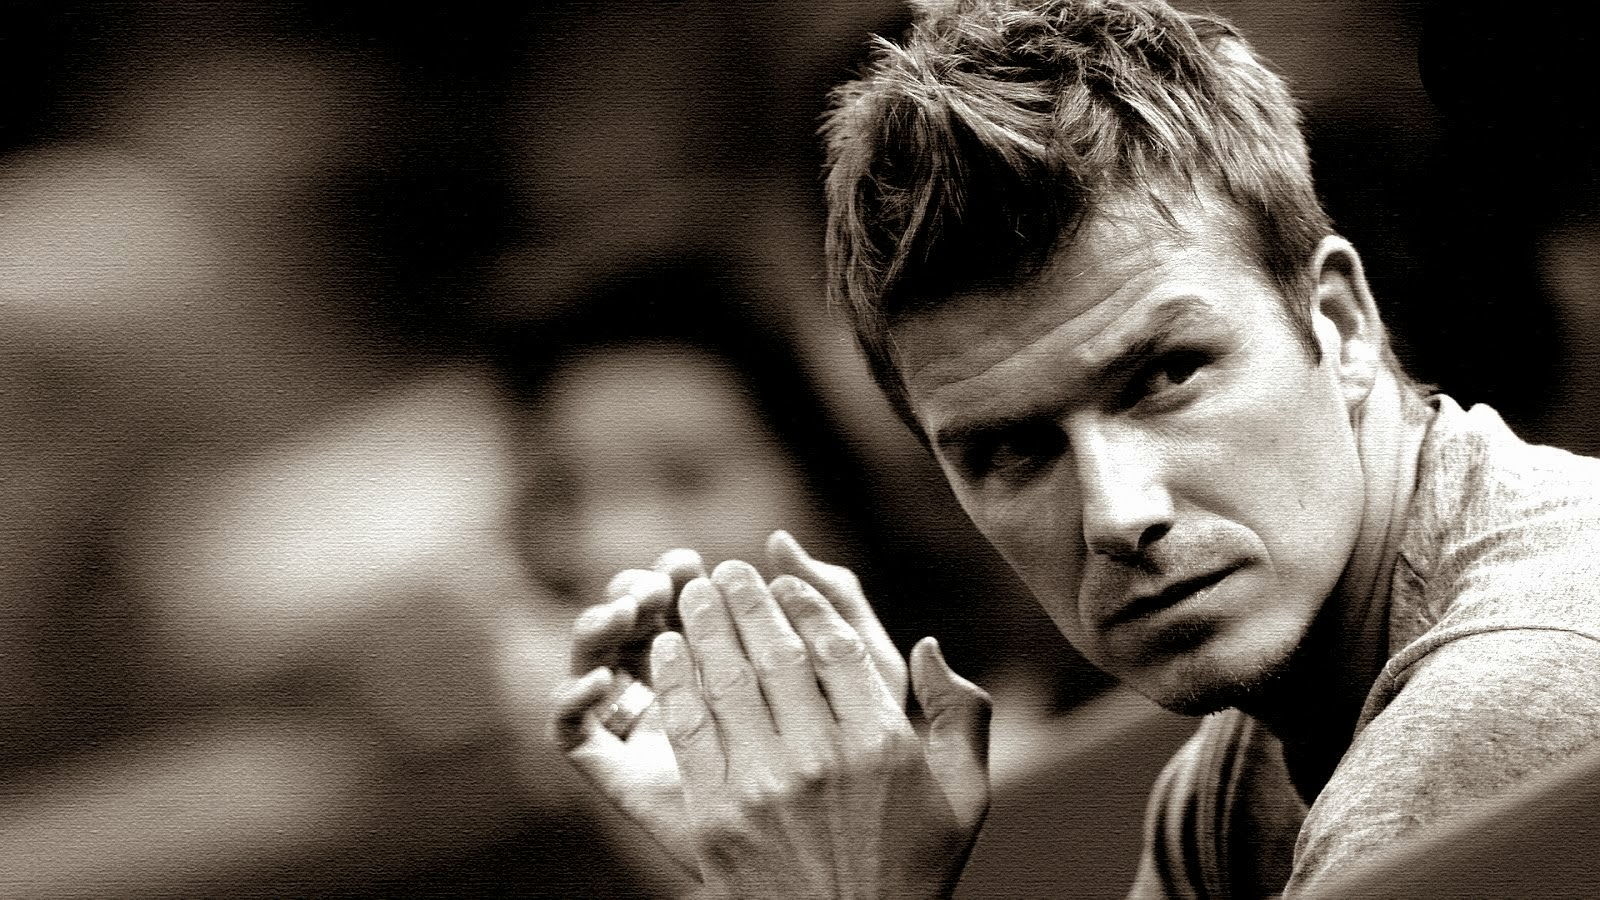 David Beckham Wallpapers High Resolution And Quality Download